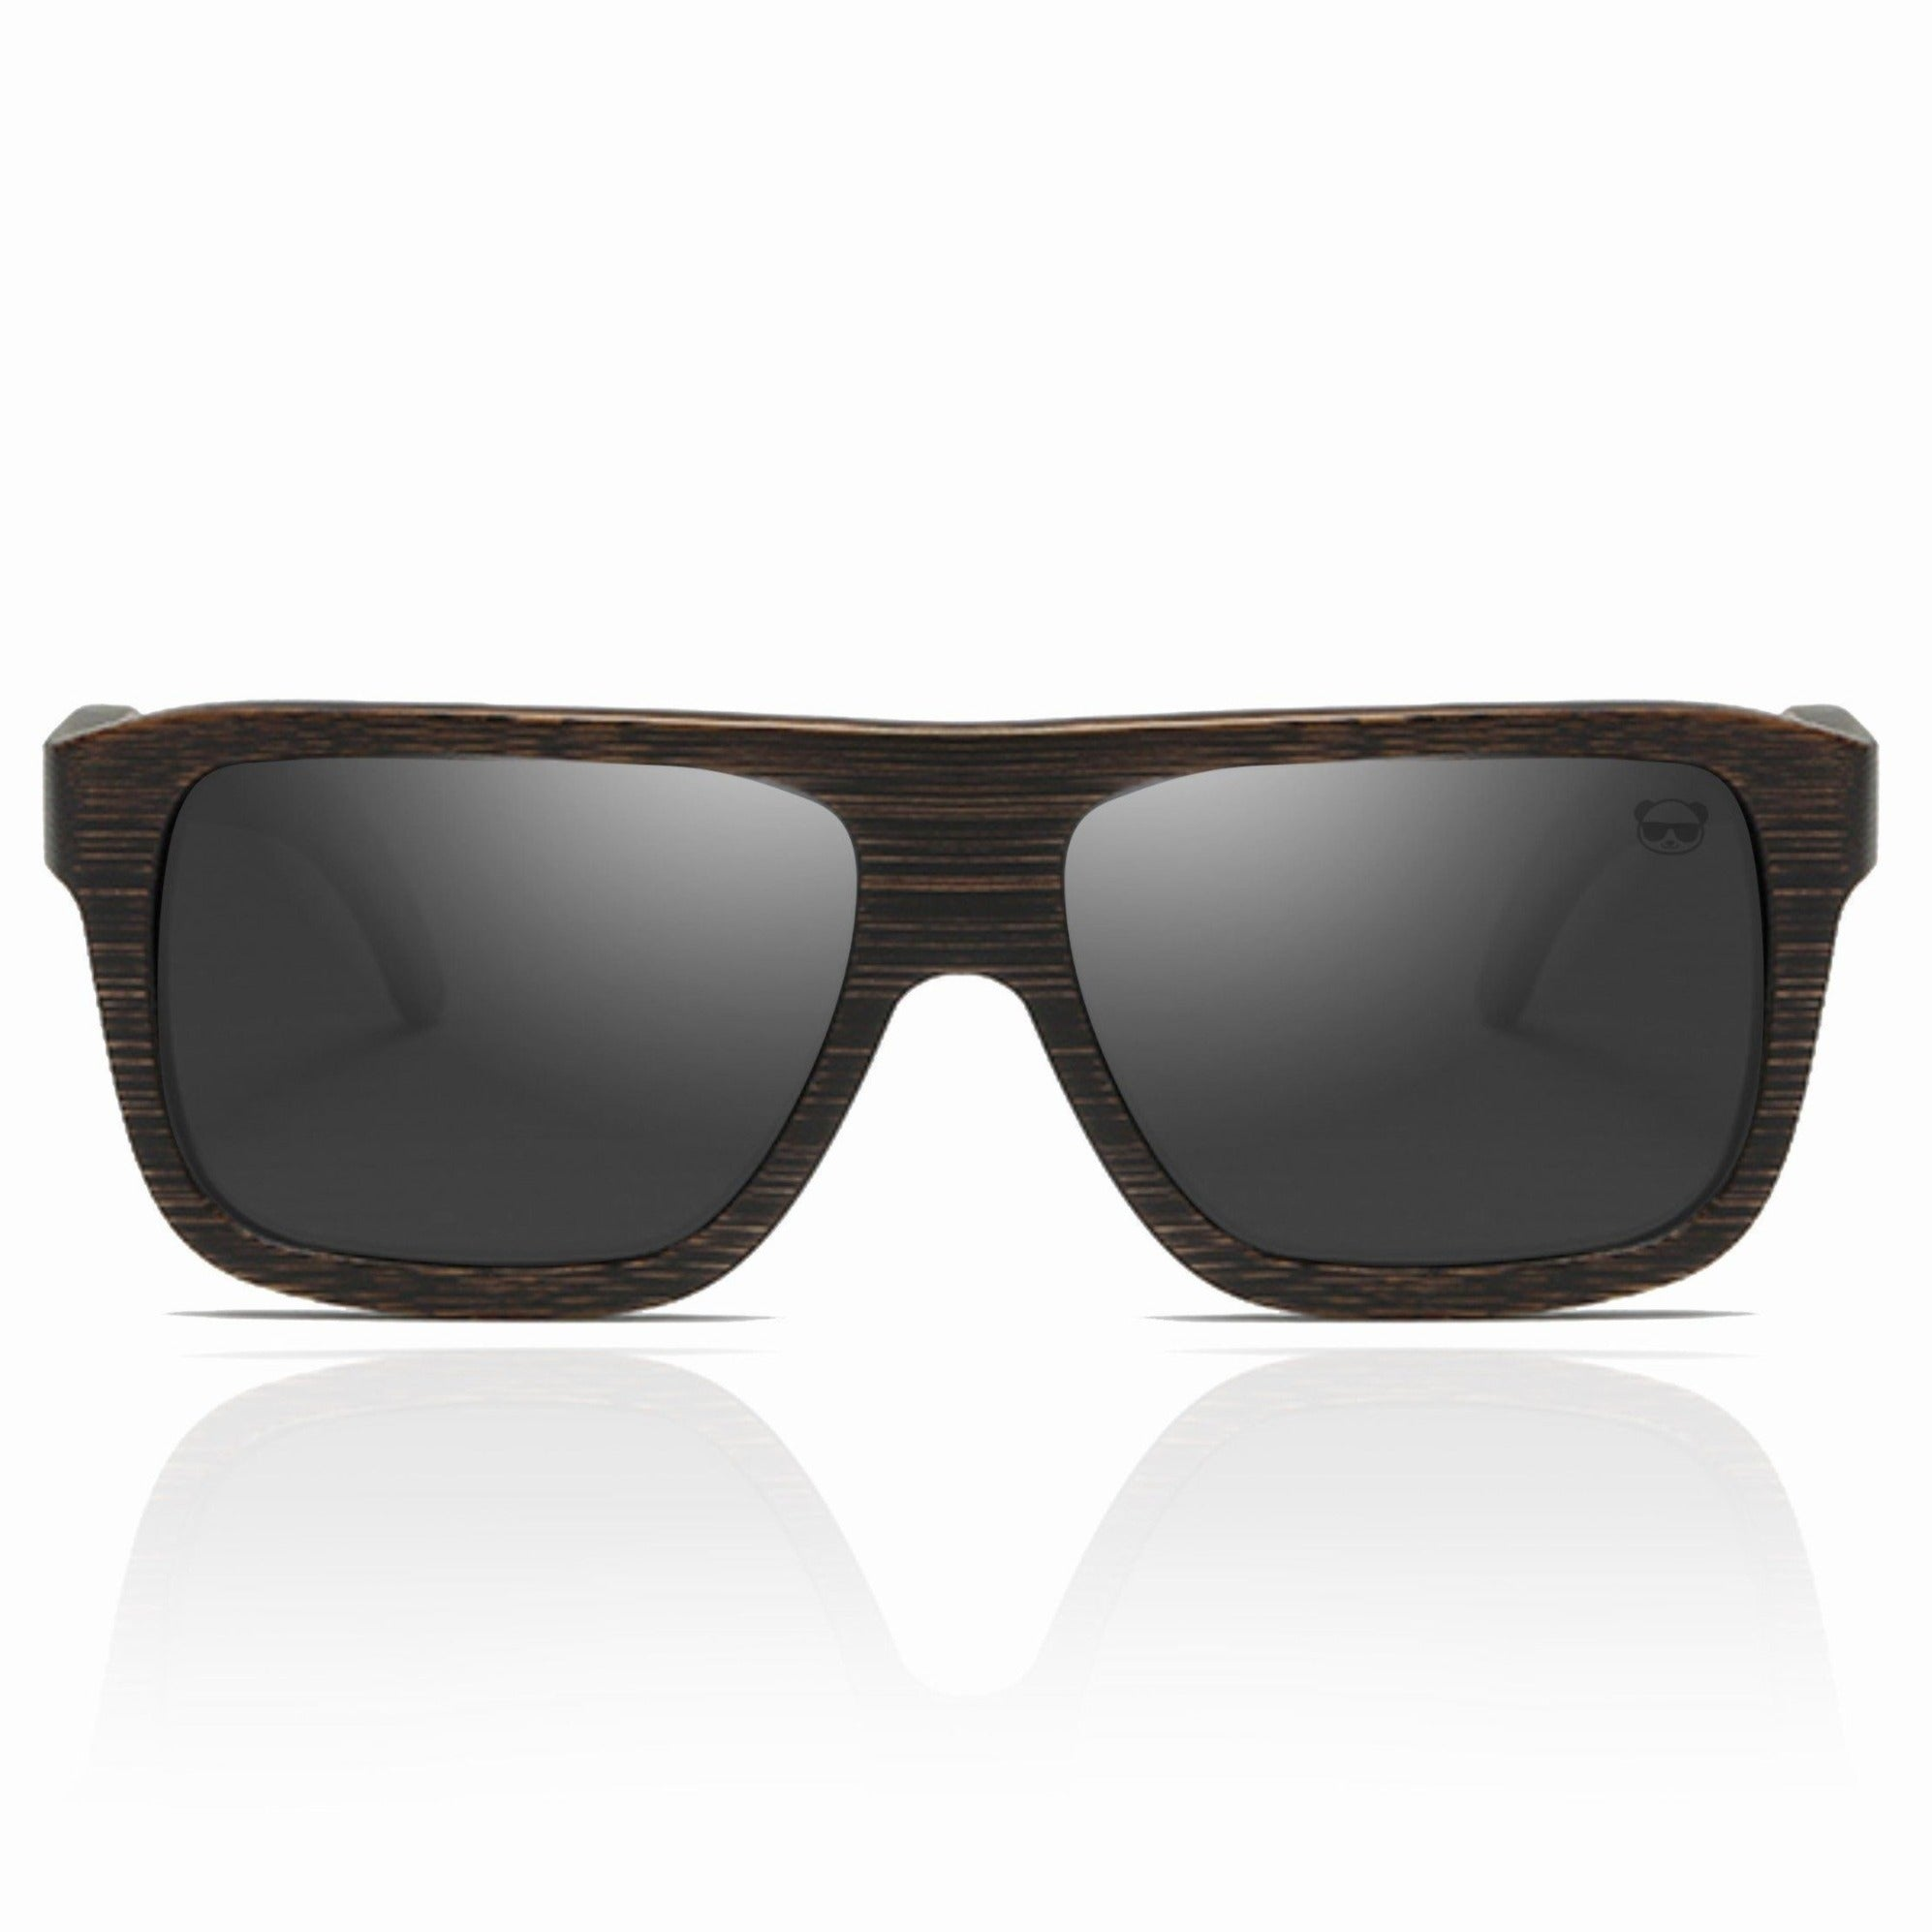 Kingston Sunglasses FreshForPandas Dark